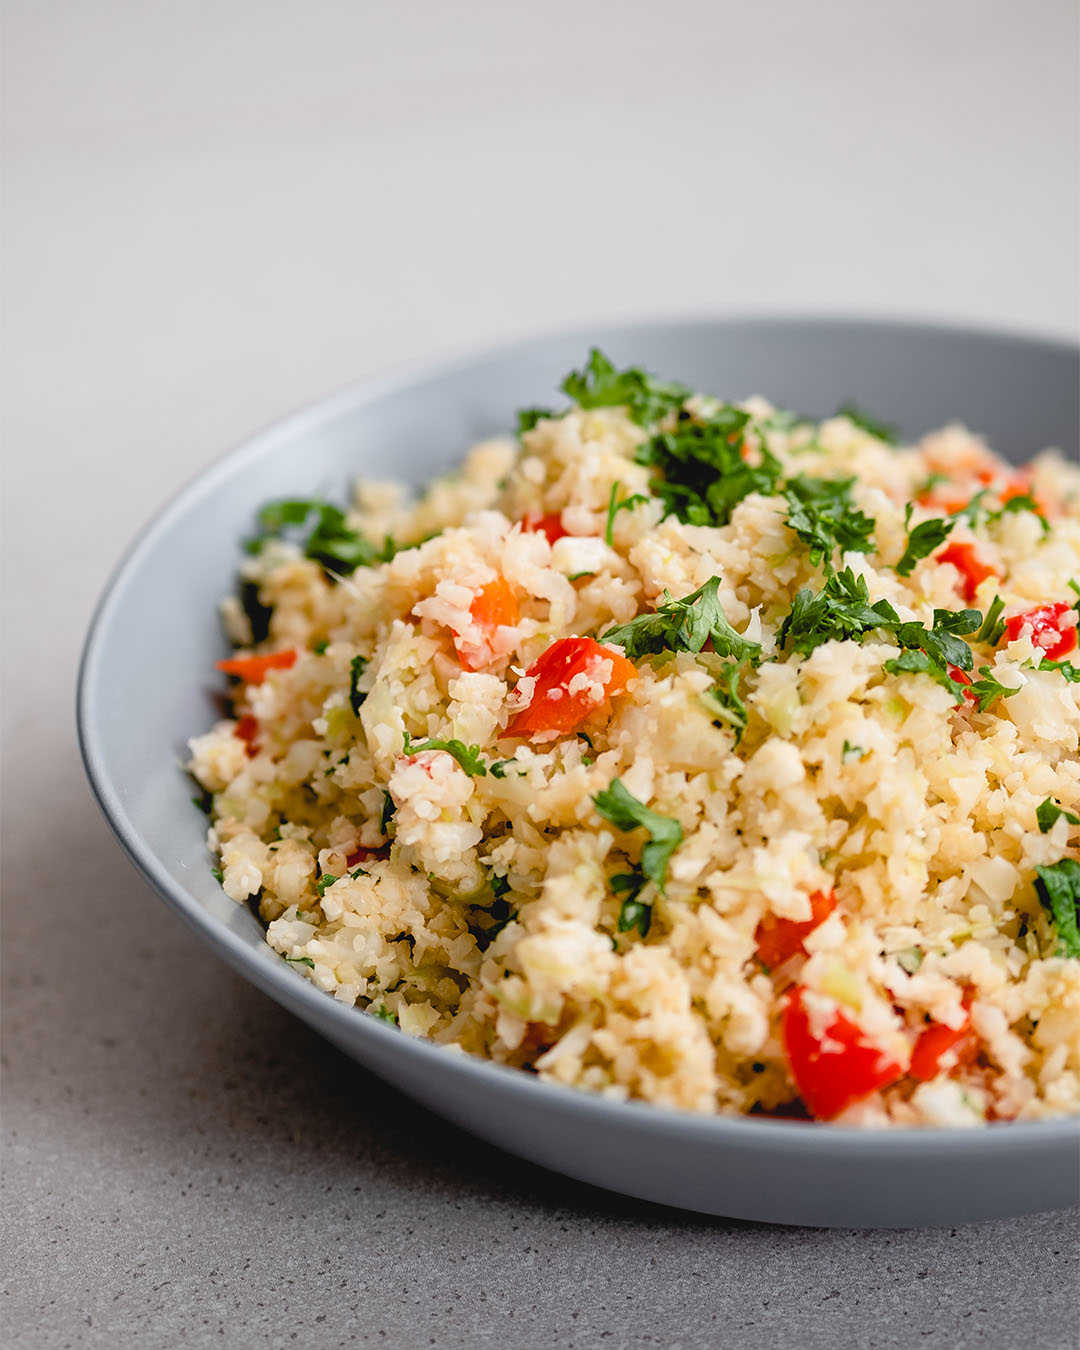 Cauliflower 'rice' with red pepper and leeks